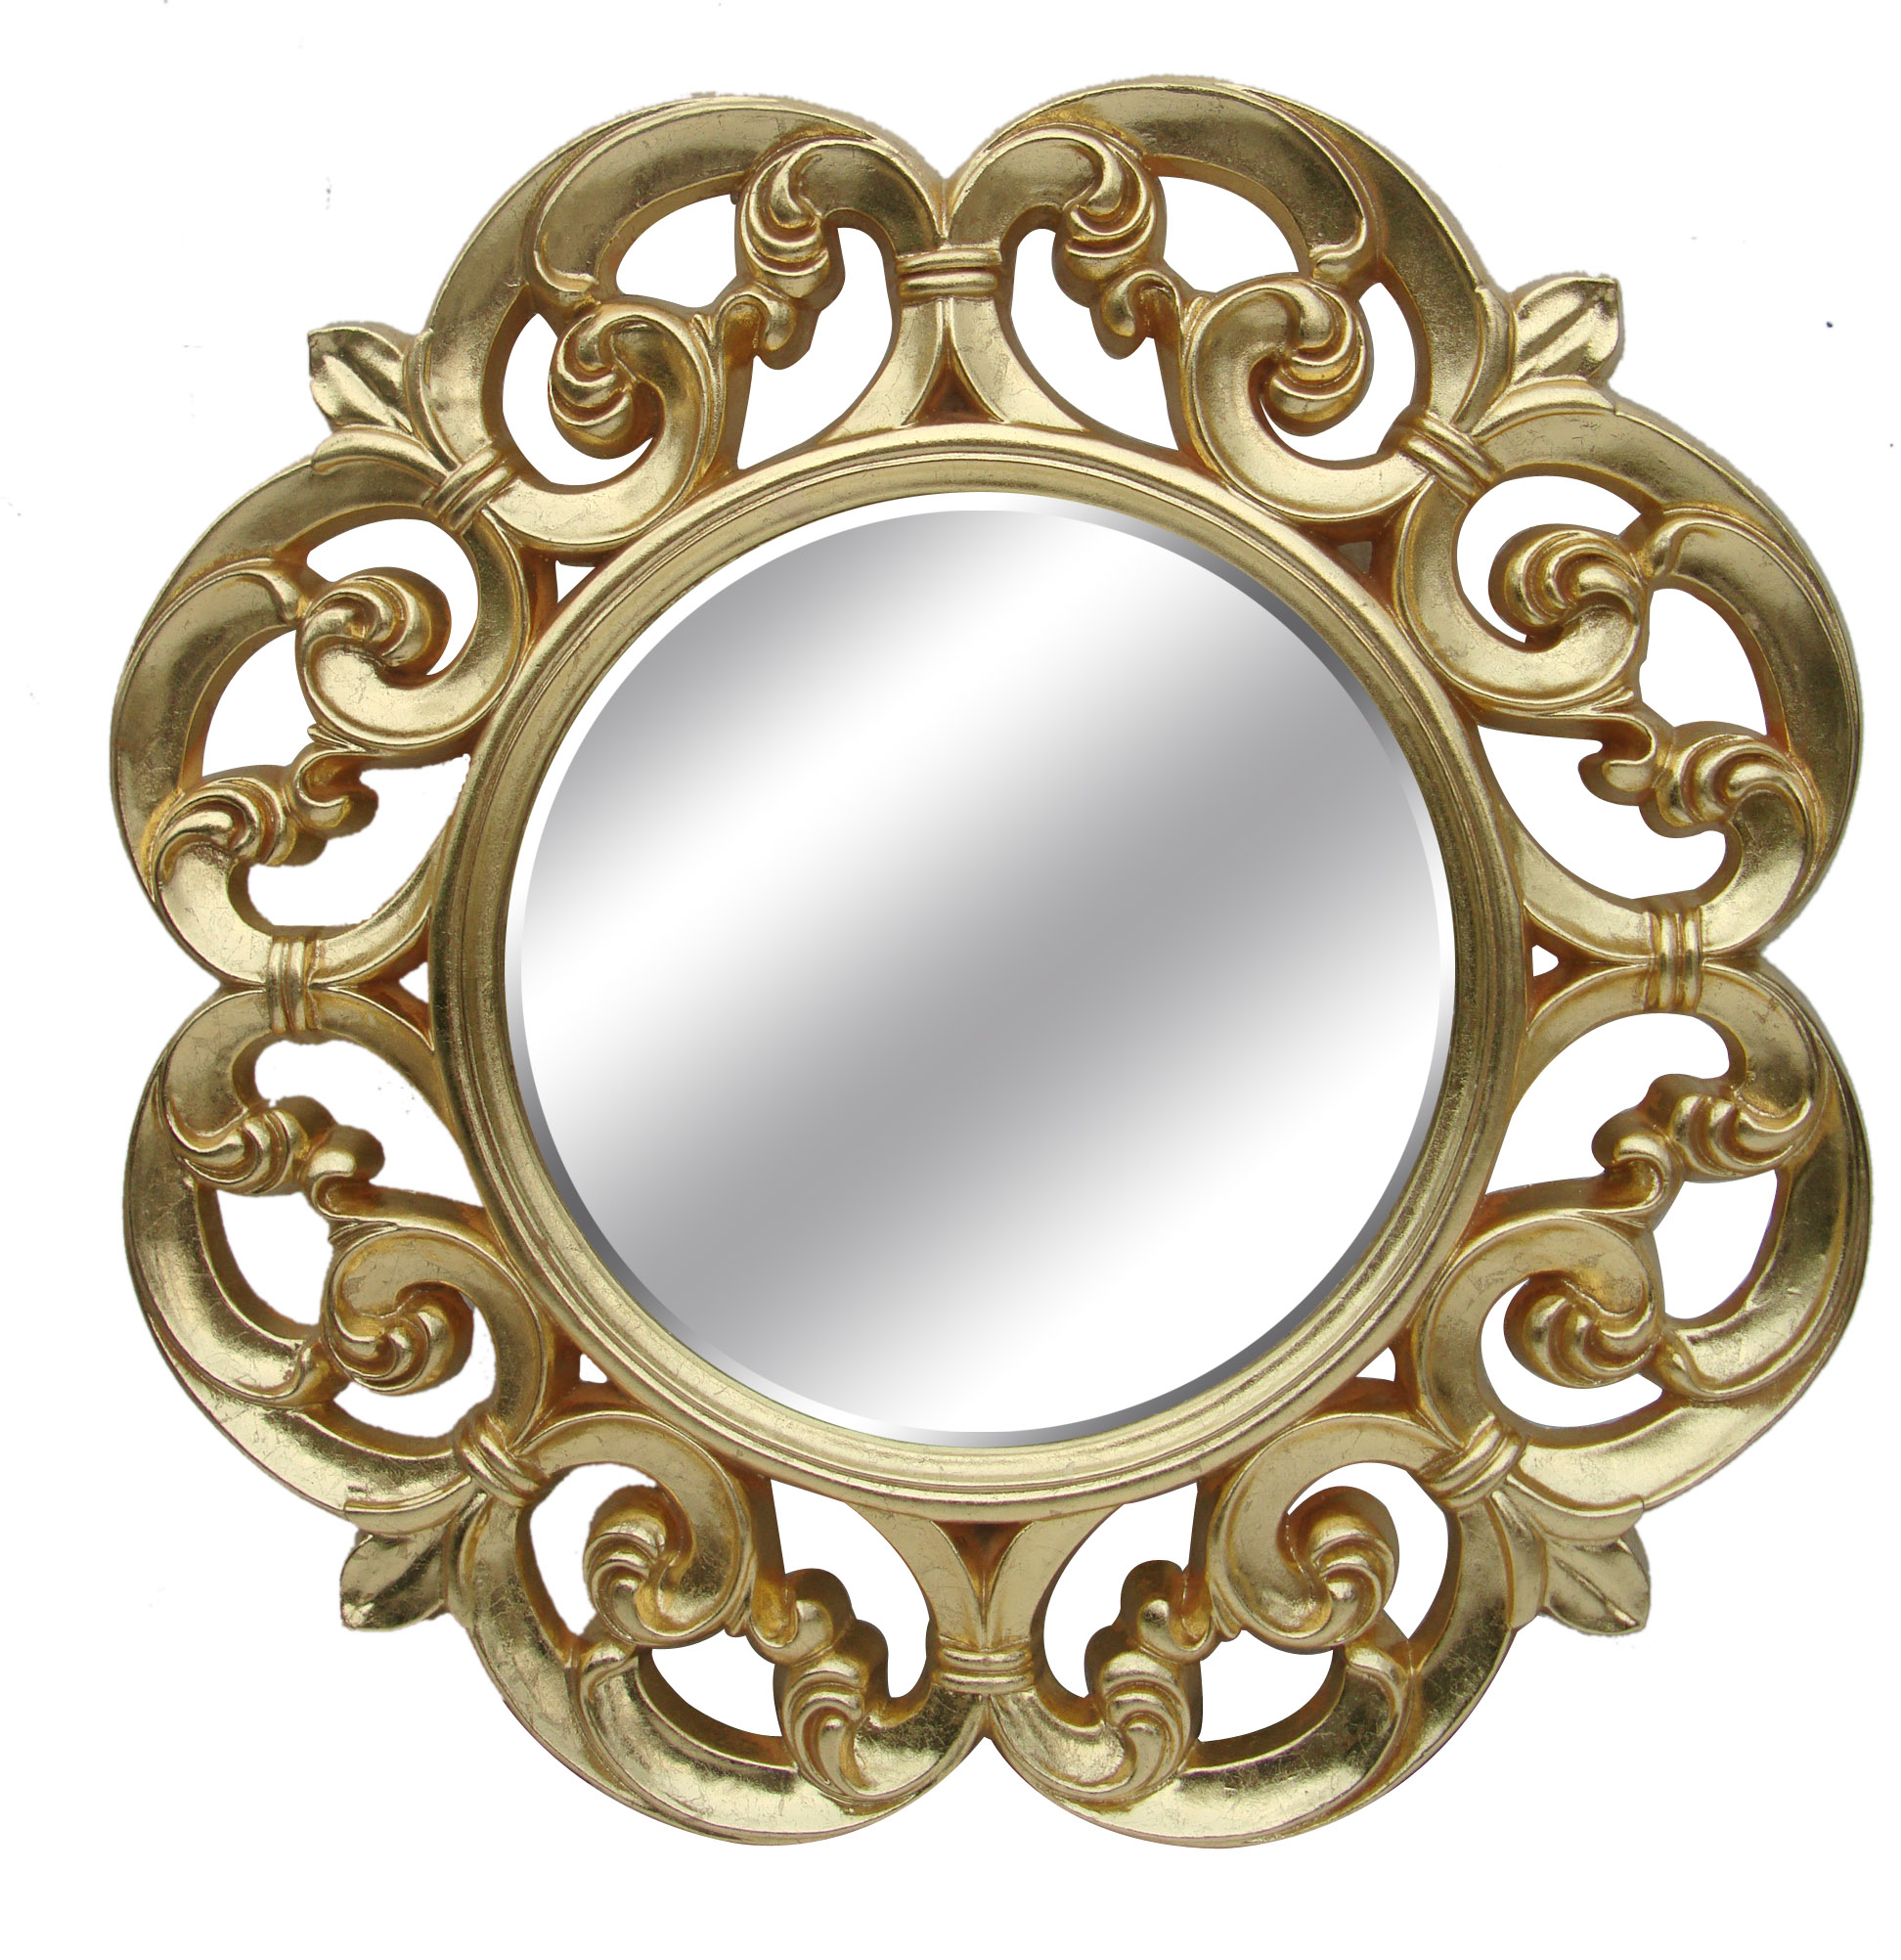 Pu Frame Round Decorative Wall Gold Antique Mirror Rustic Big Wall Mirror For Living Room Buy Vanity Mirror Room Mirror Pu Frame Material Product On Alibaba Com